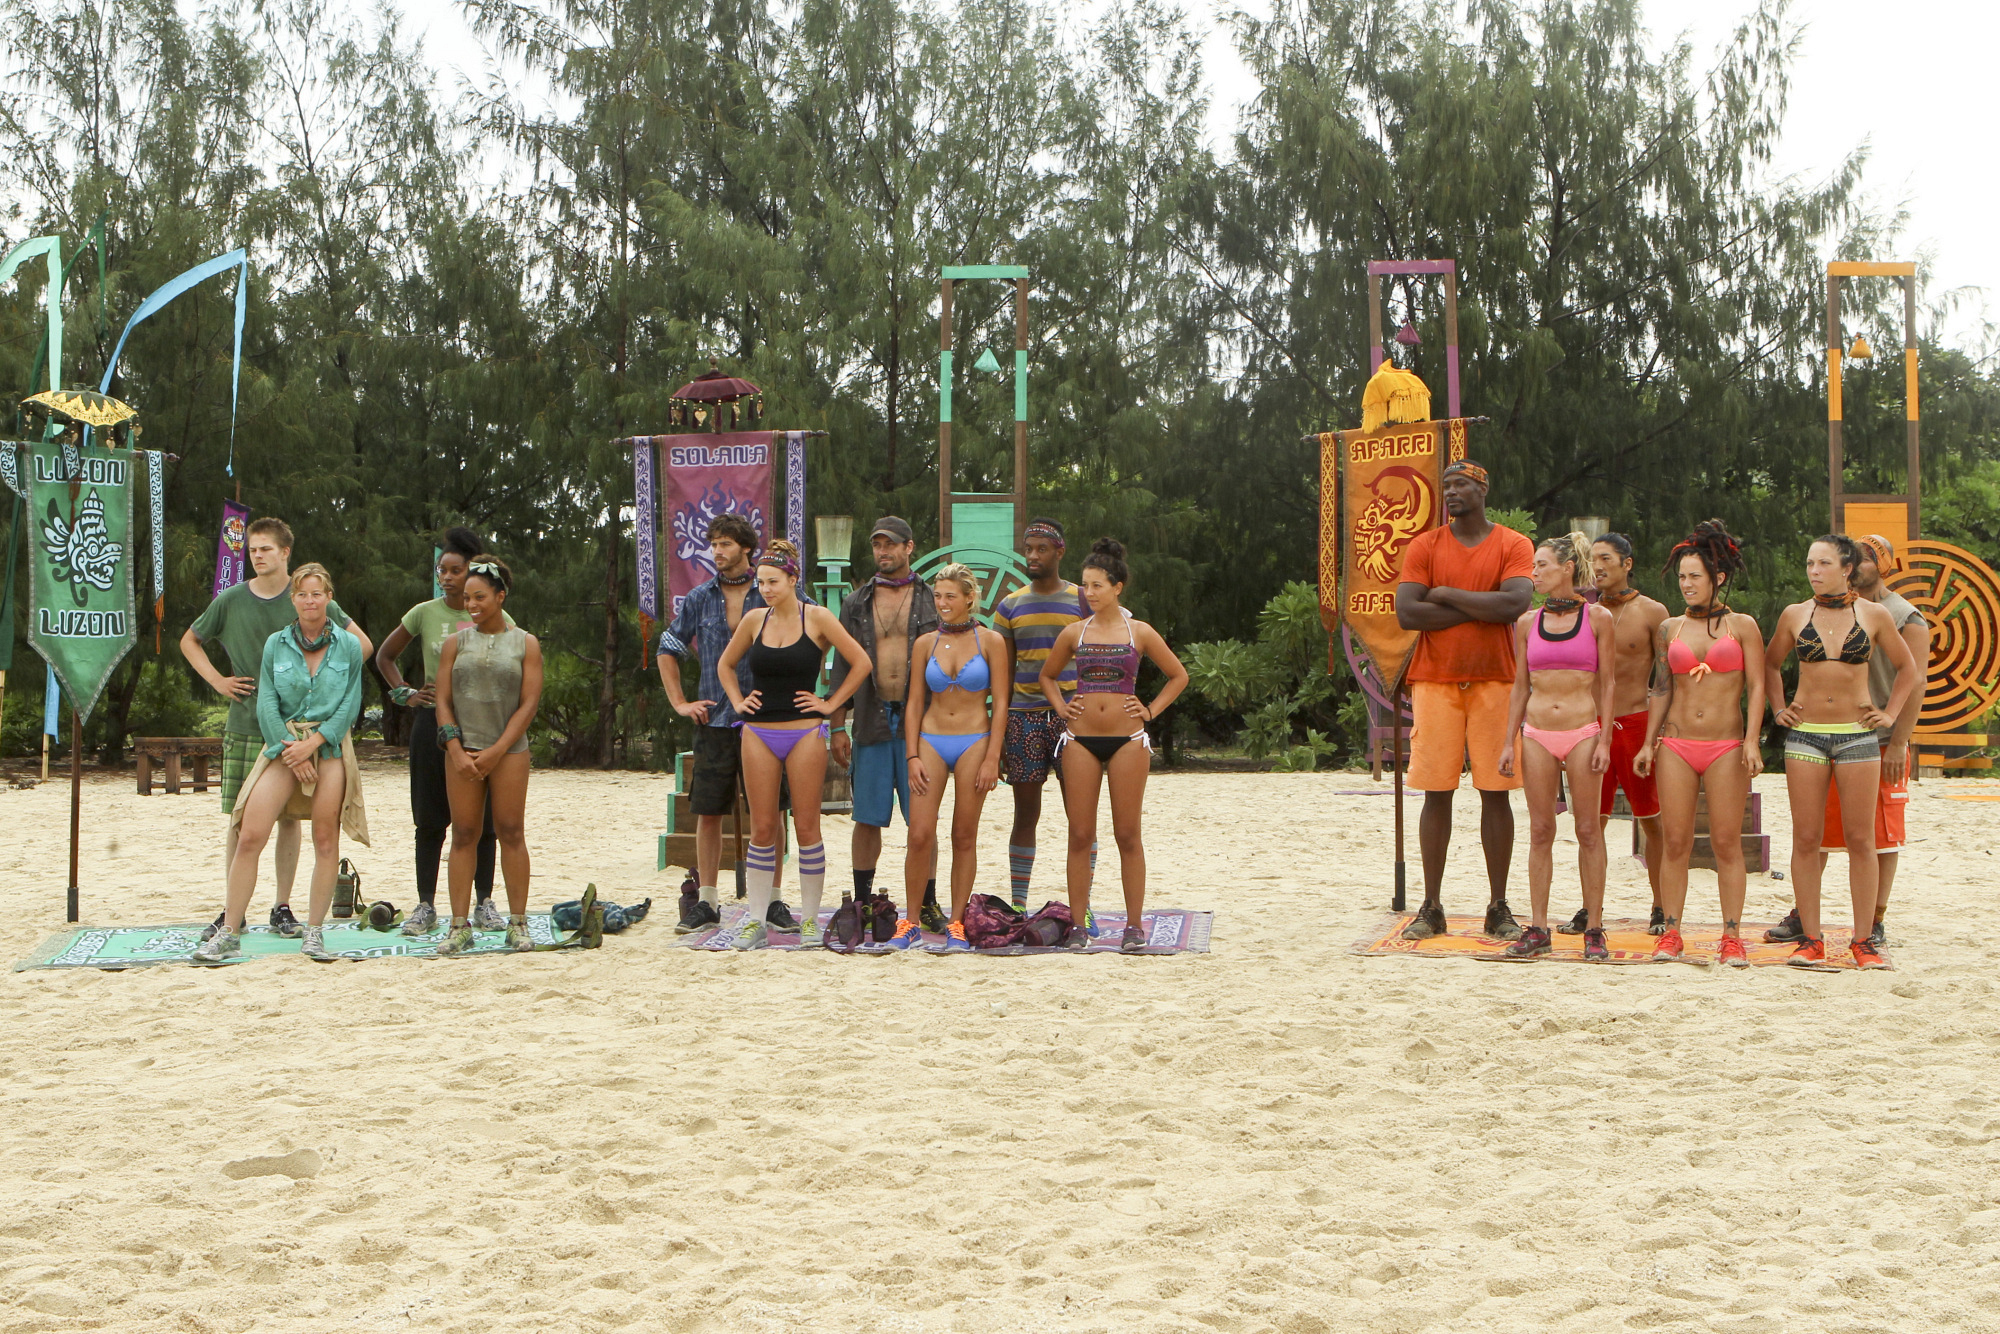 Survivor: Cagayan cast in Episode 2 Season 28